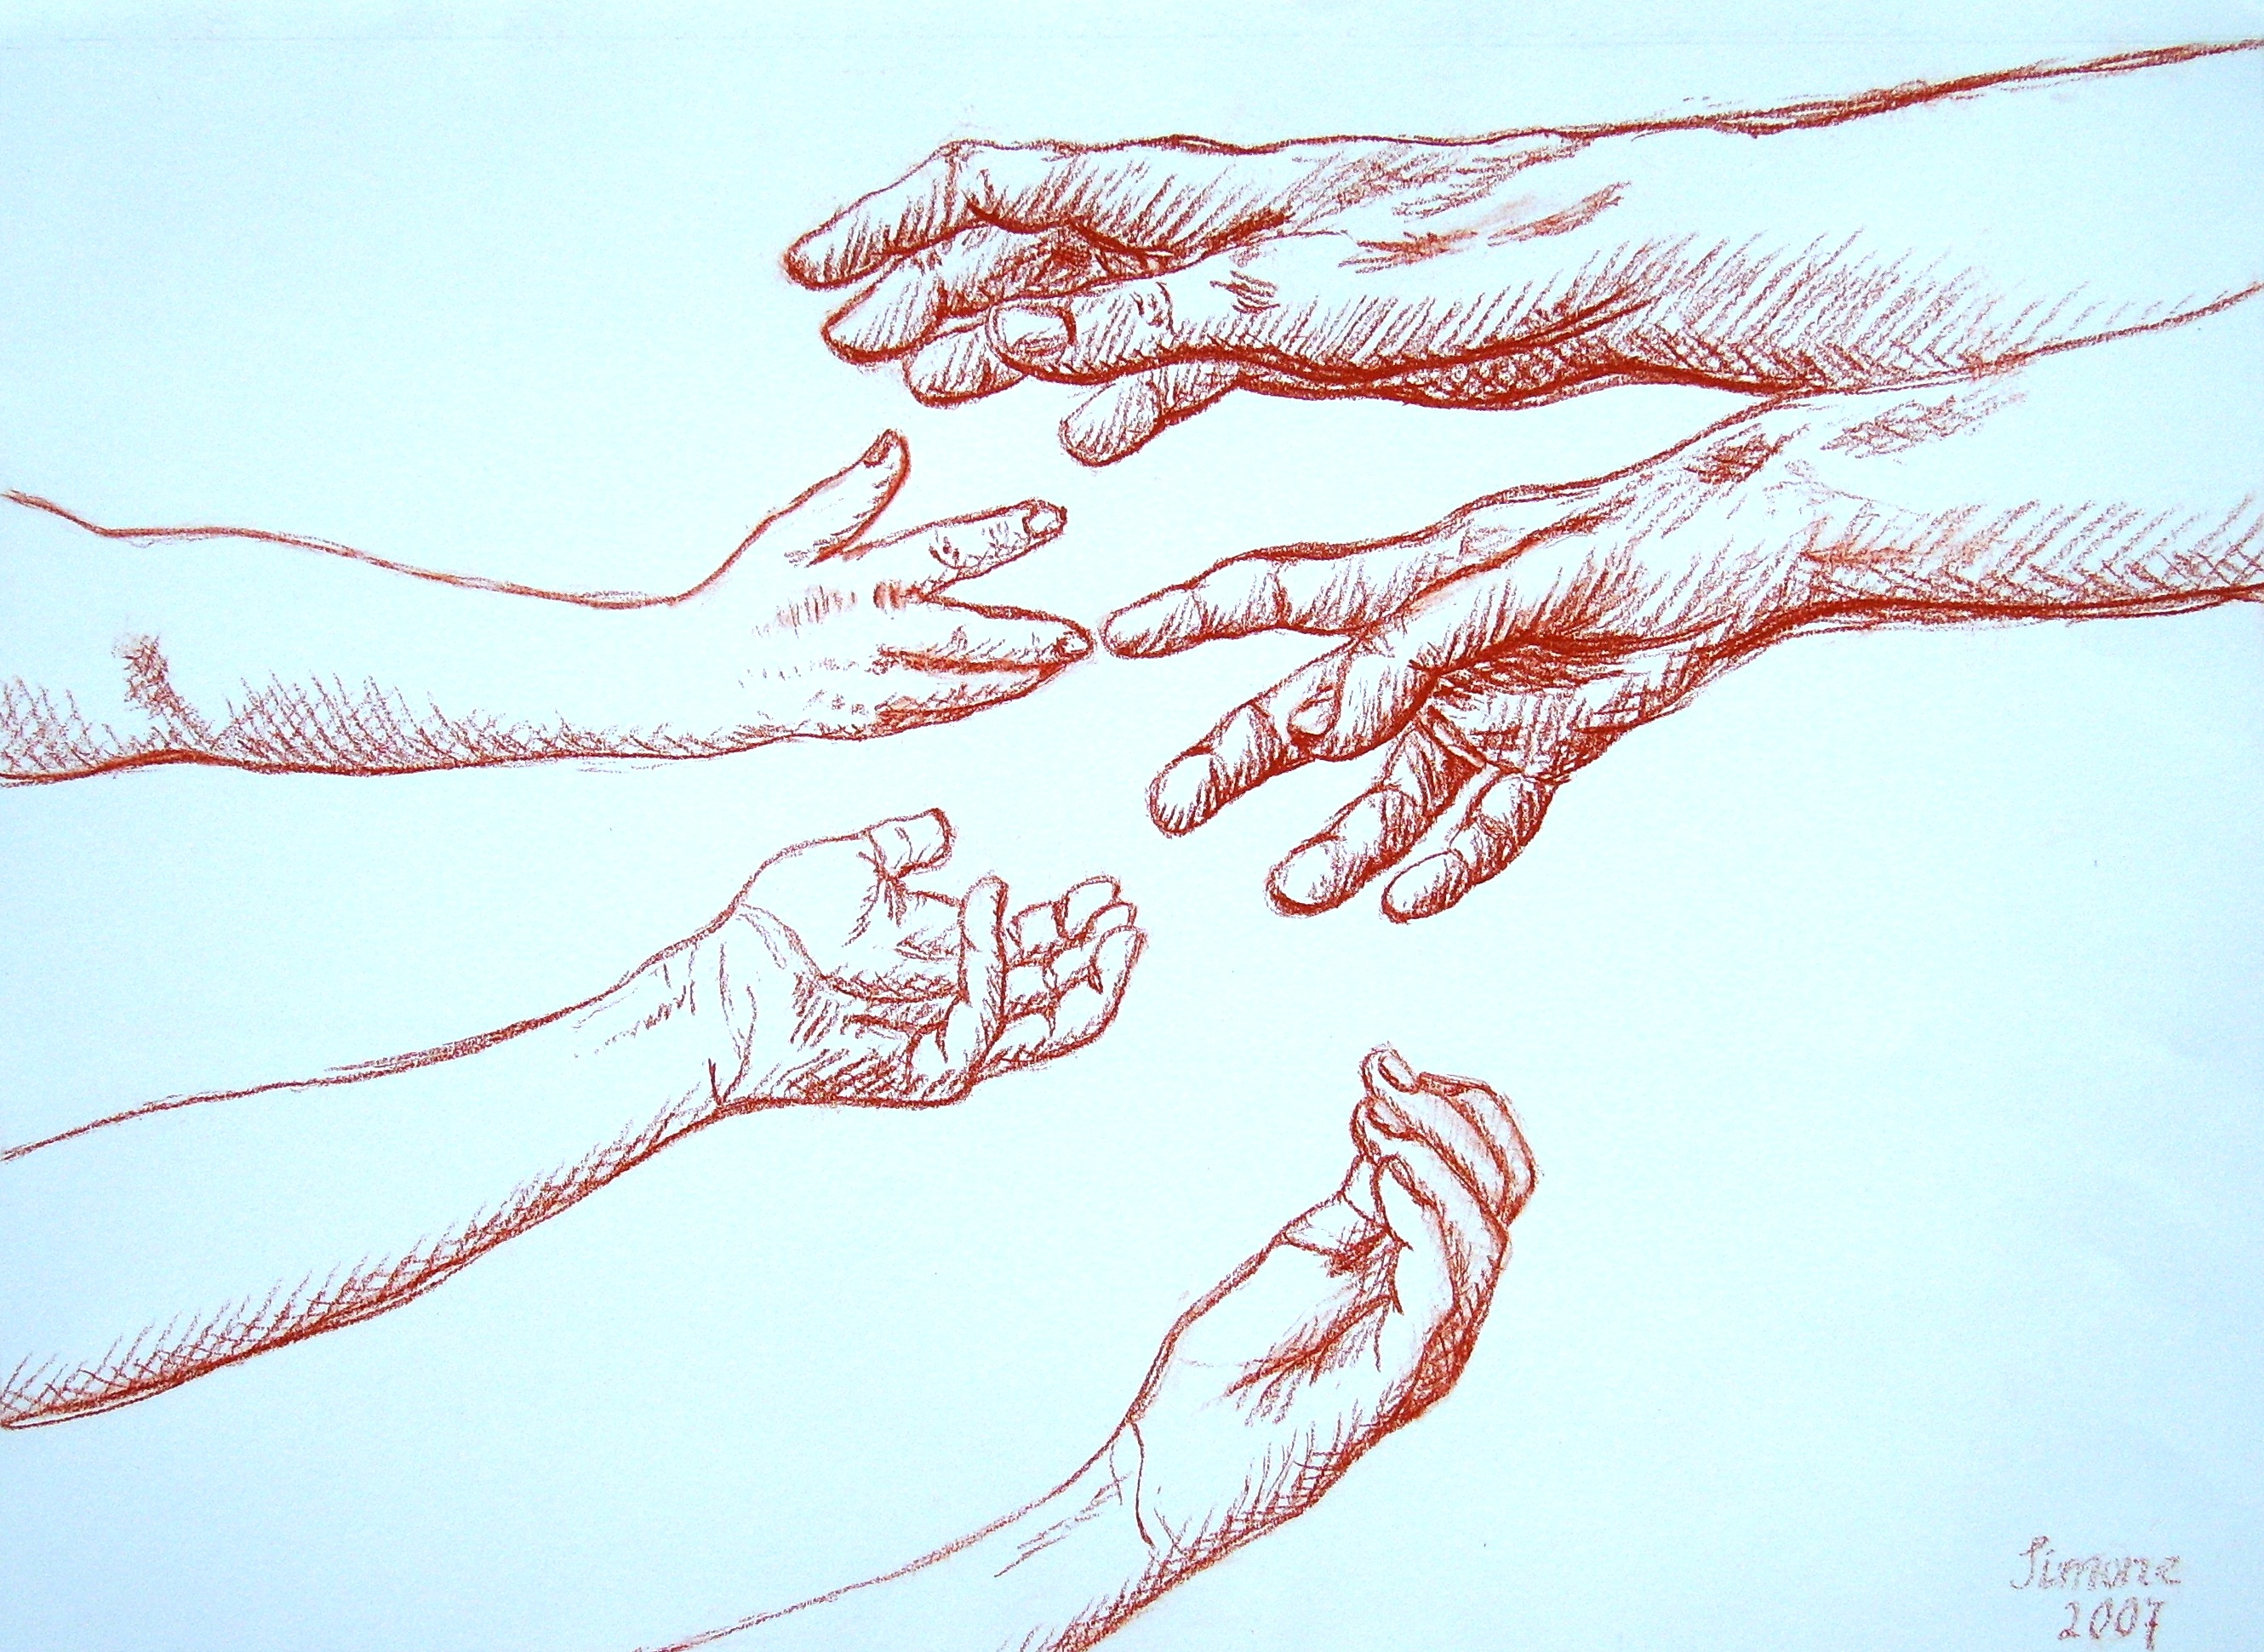 My family, inspired by Michelangelo, conté crayon